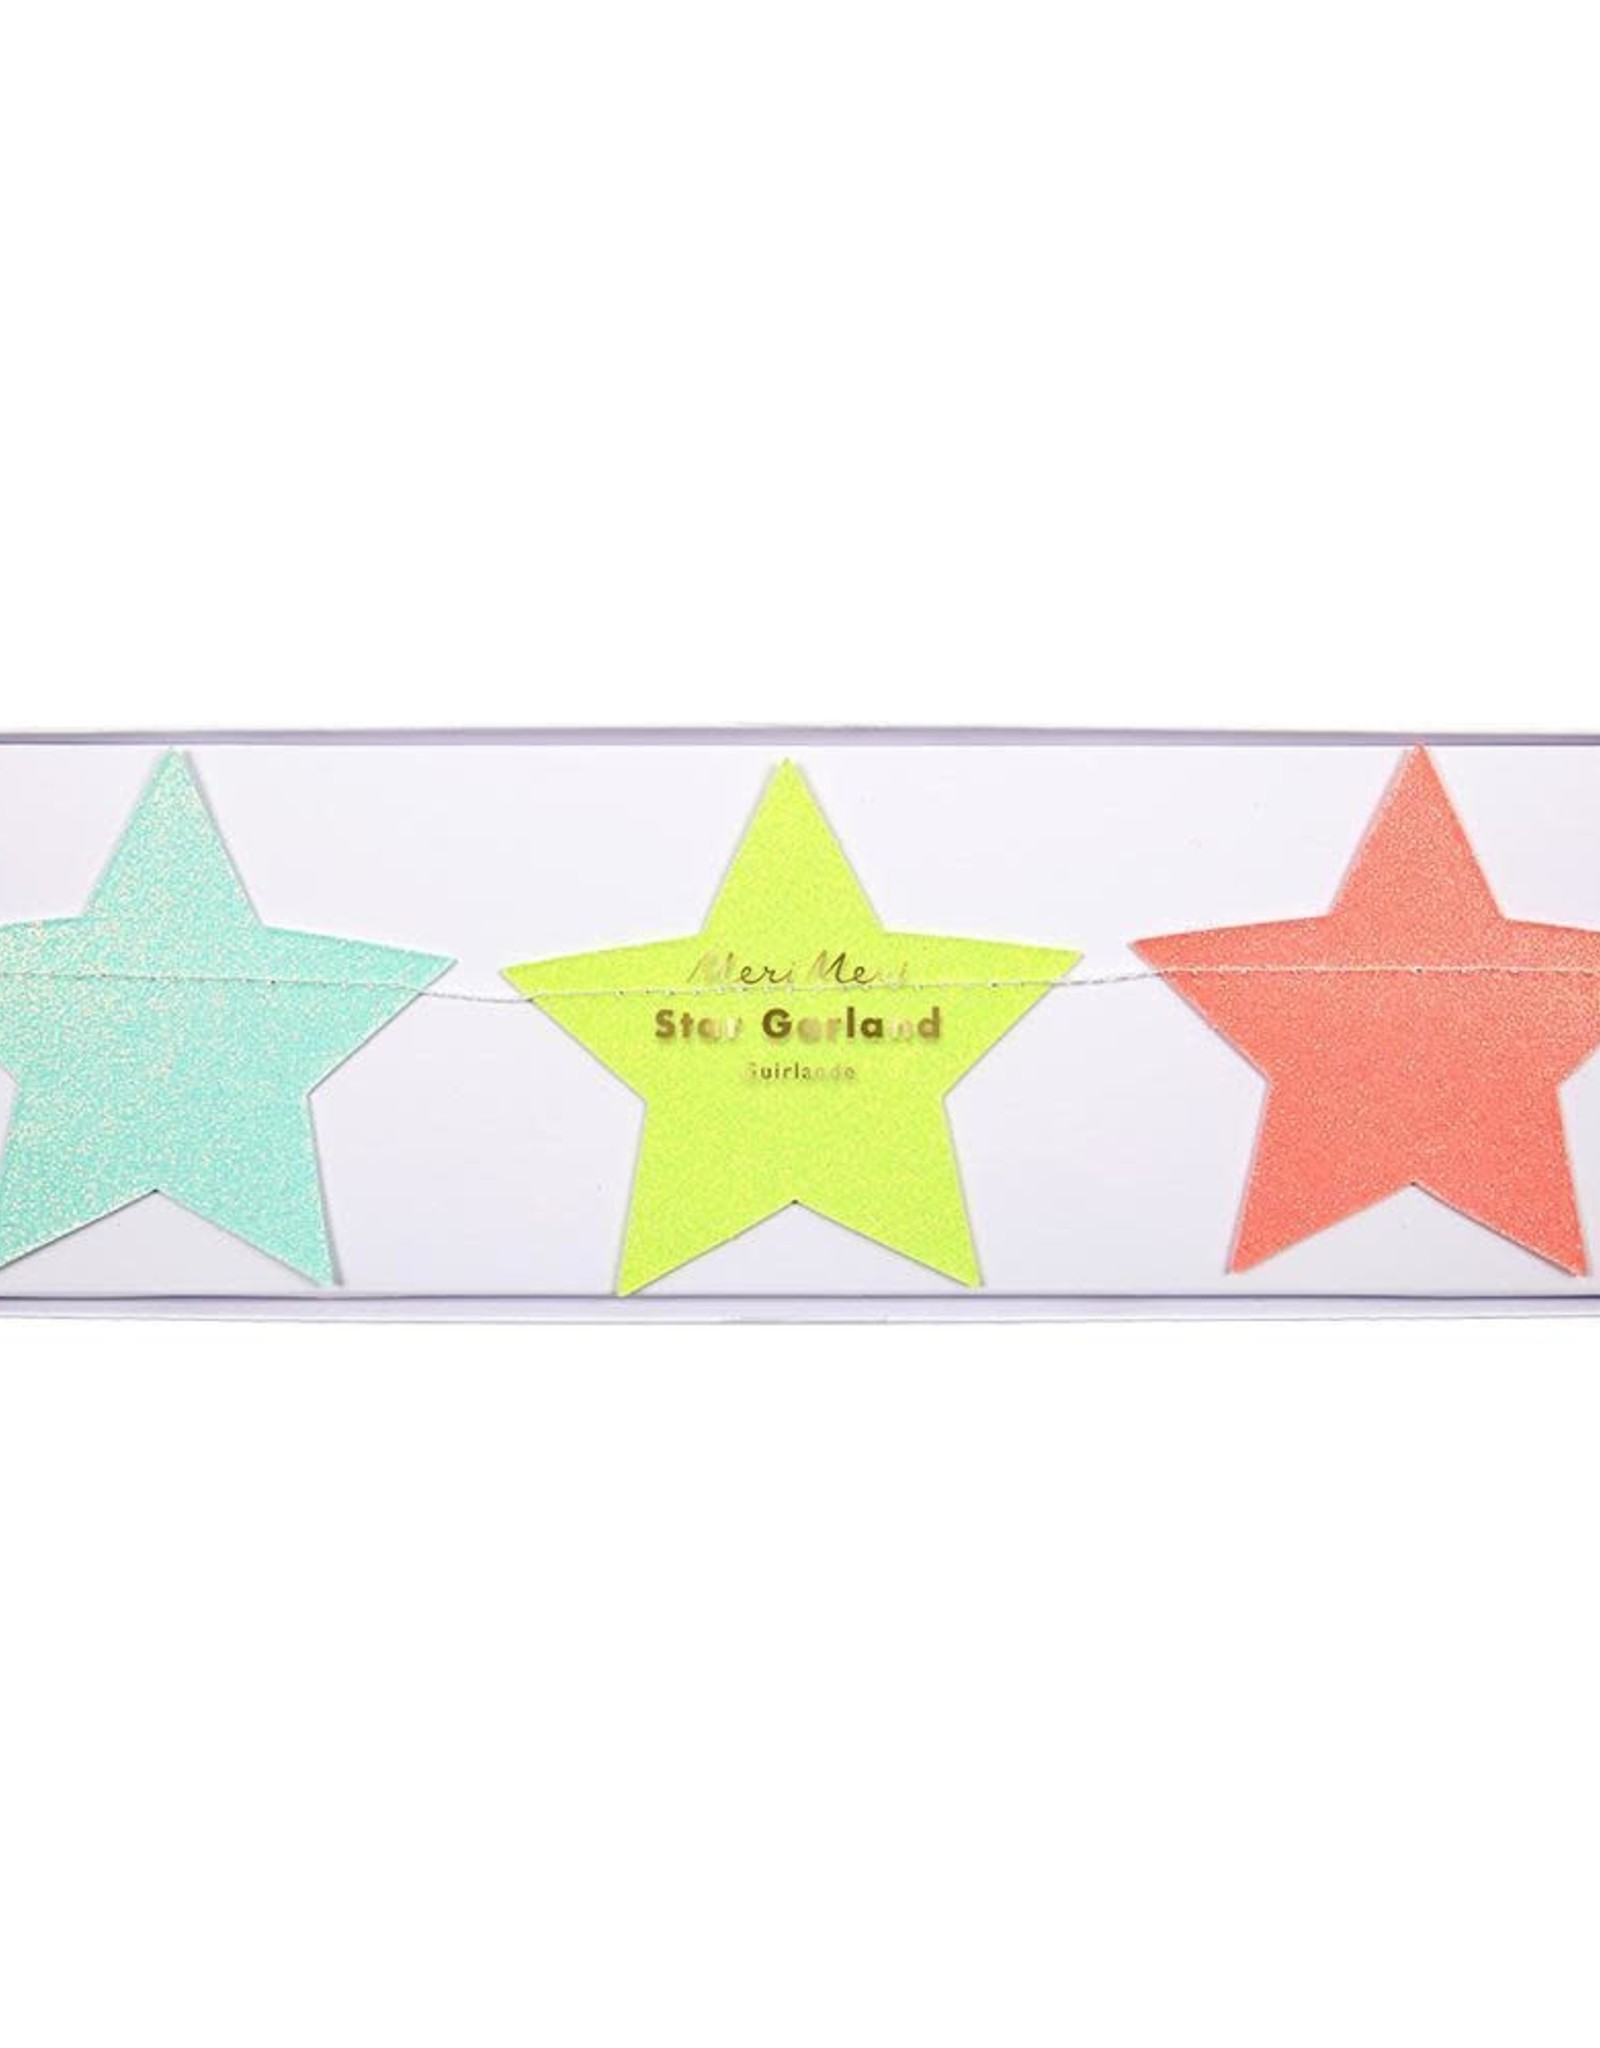 Meri Meri multi colored star garland